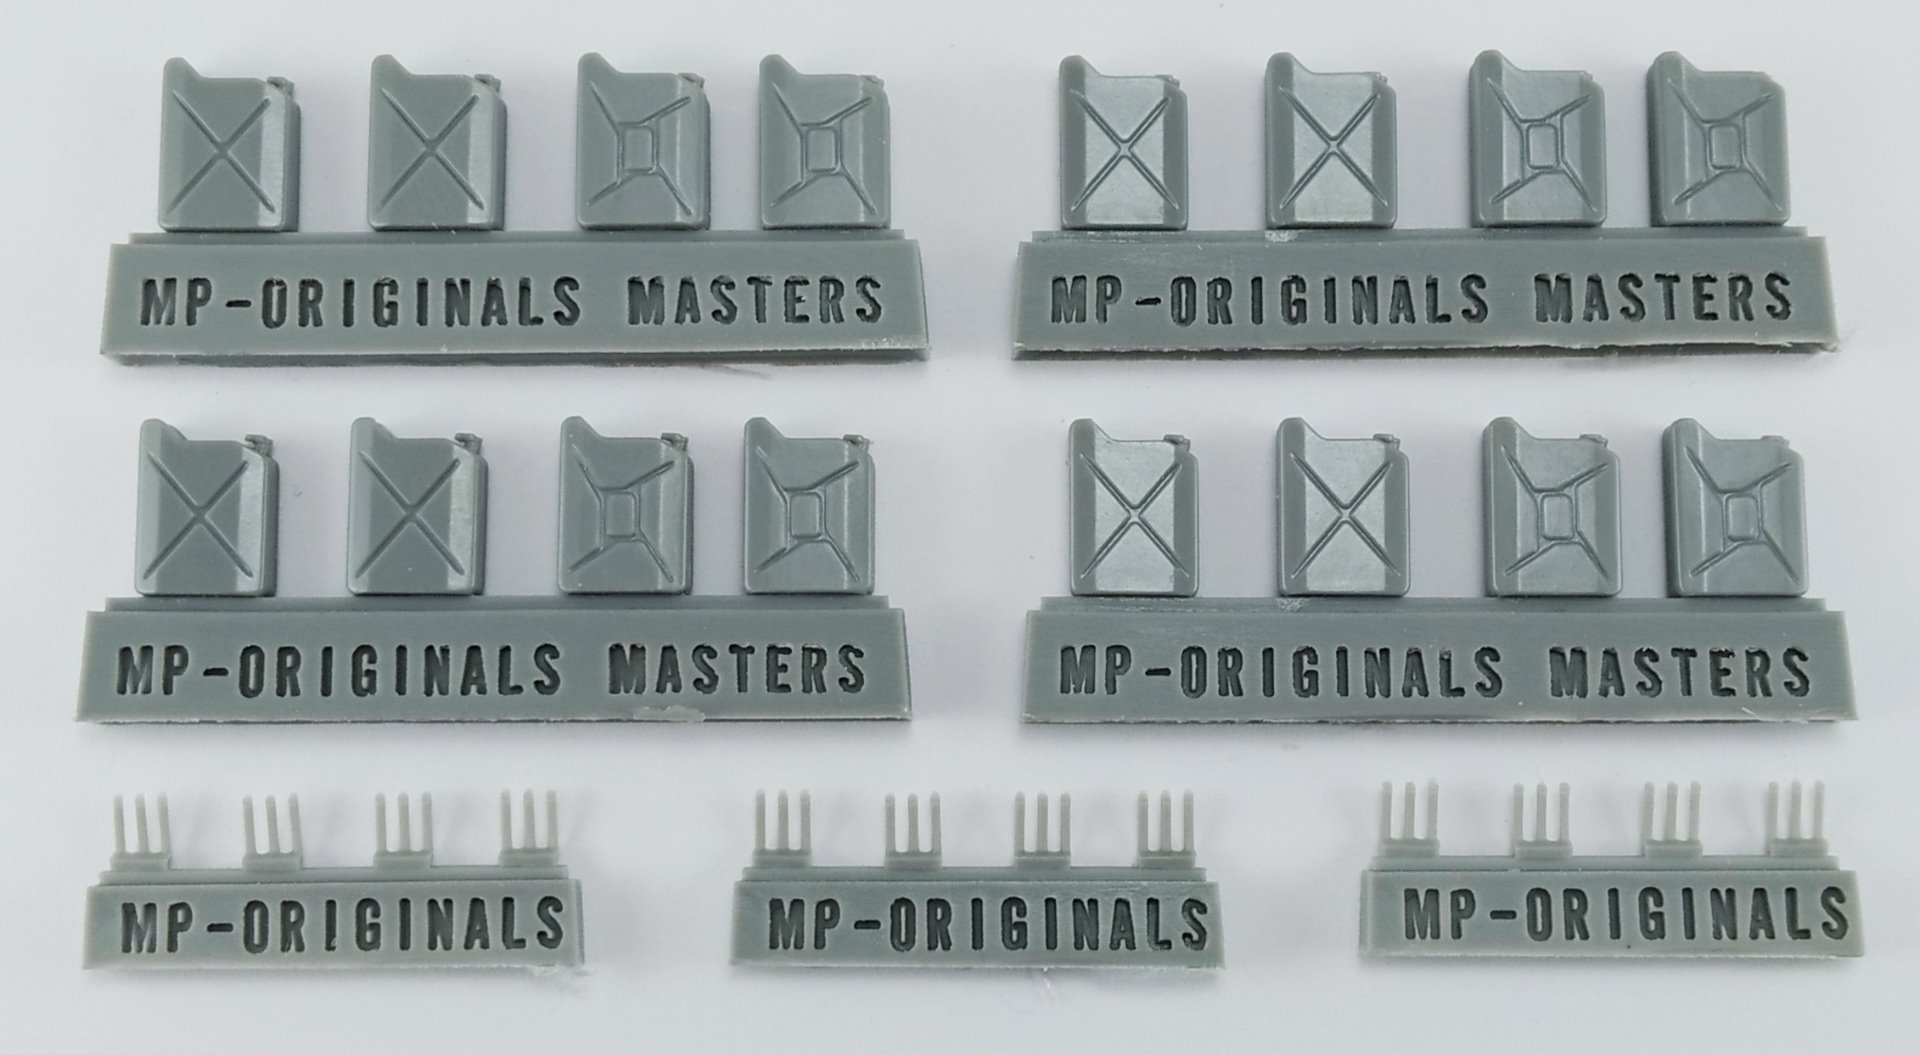 MP Originals Masters Models бочки и канистры 1/48